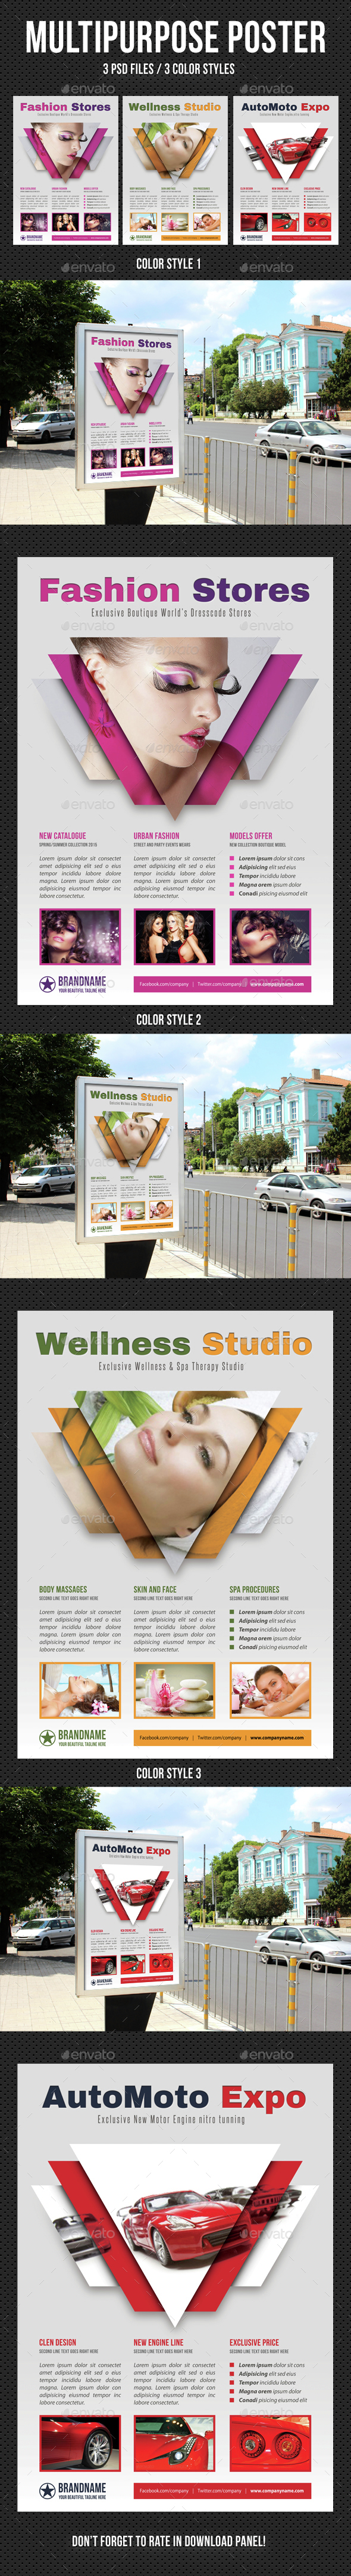 Multipurpose Flexible Poster 03 - Signage Print Templates